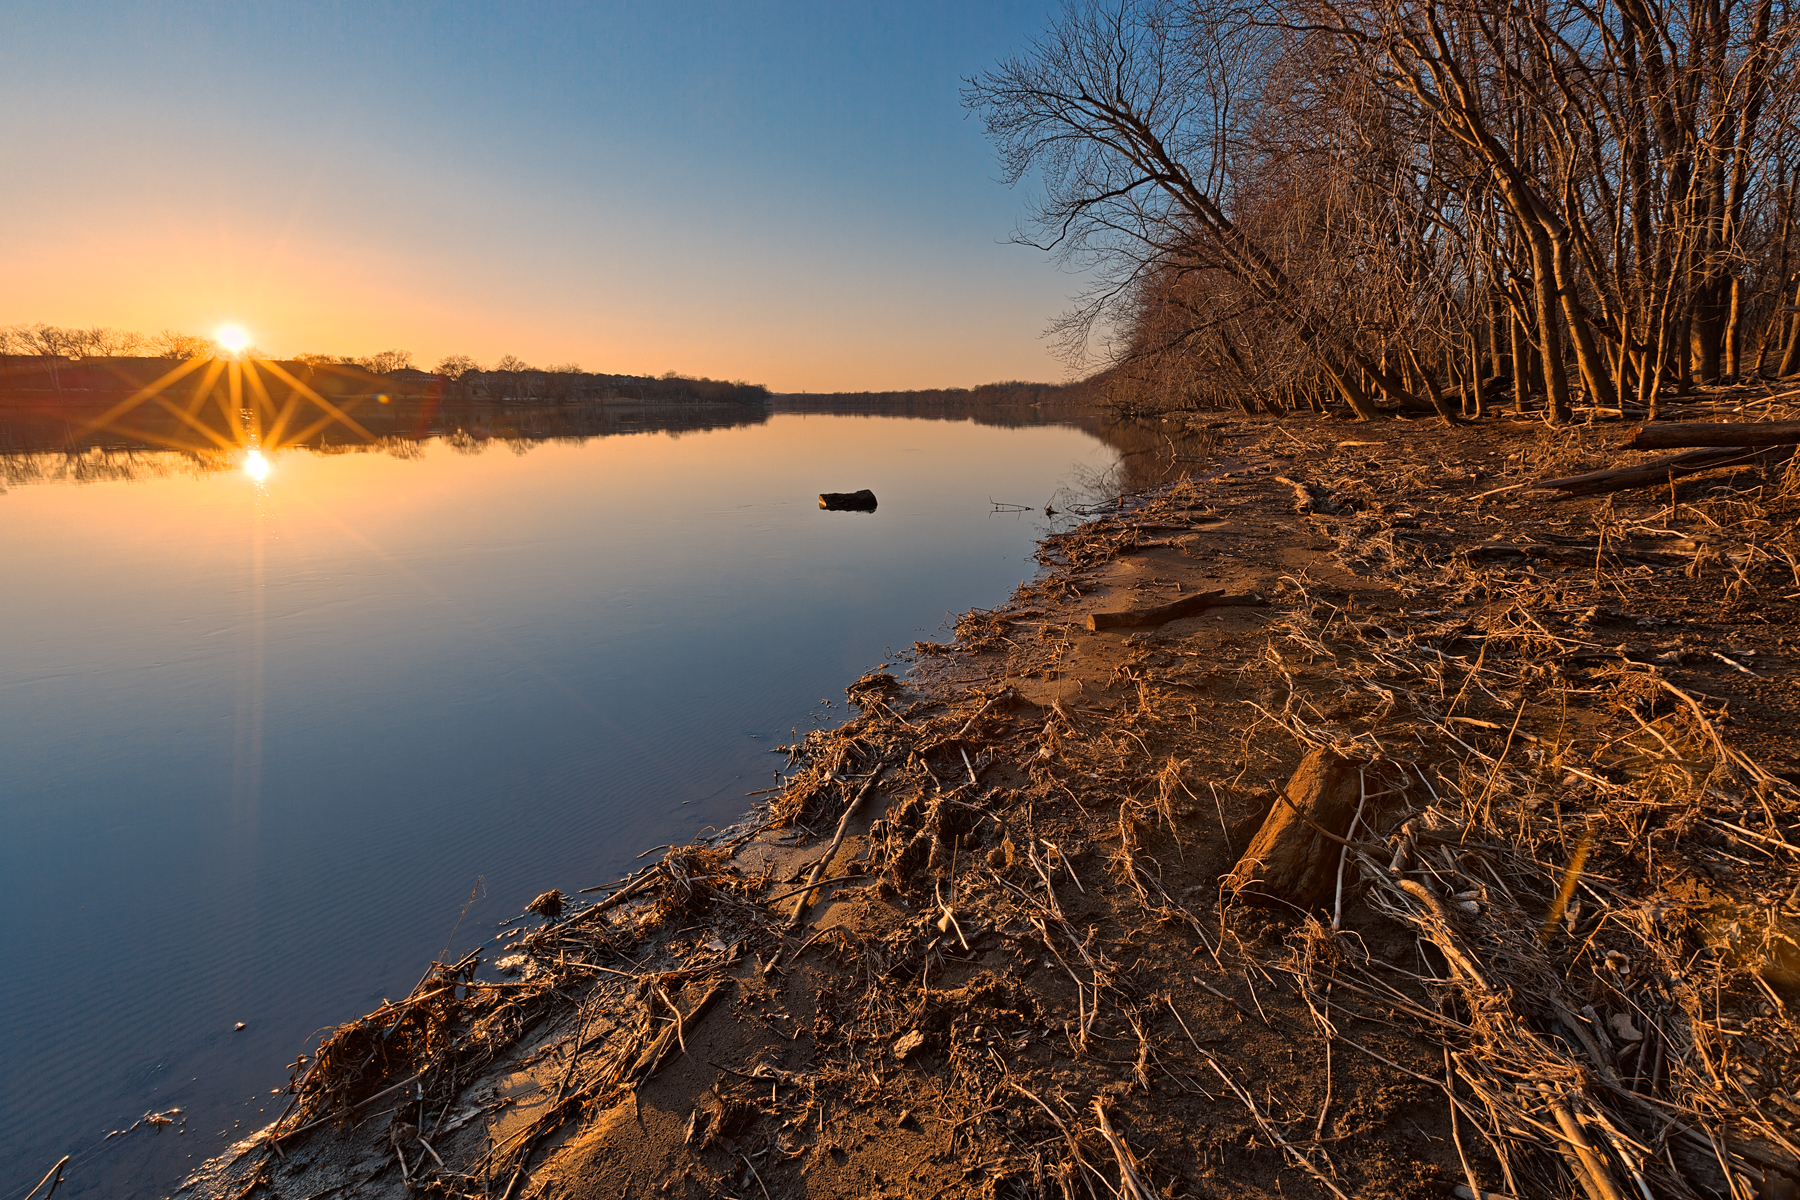 Potomac sunset - hdr photo